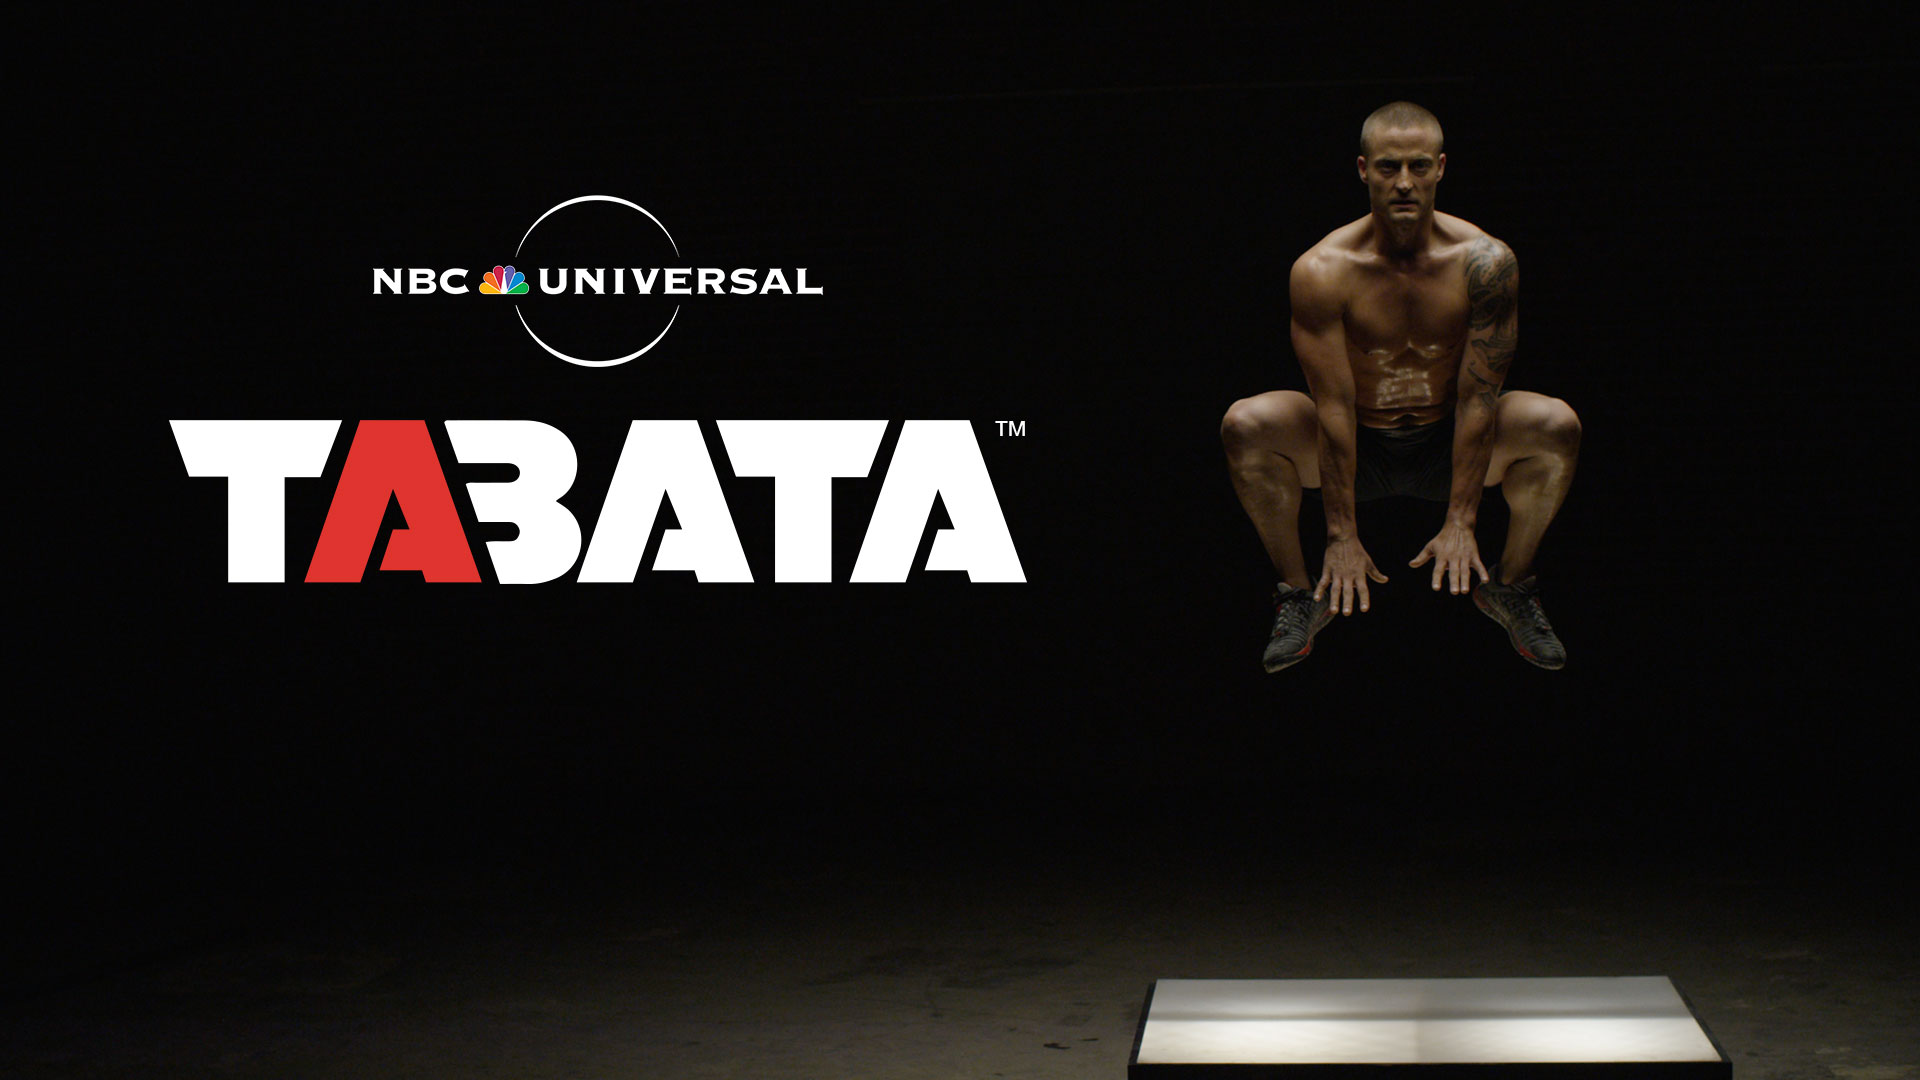 Screen shot from Tabata commercial by Envision Response and NBC Universal